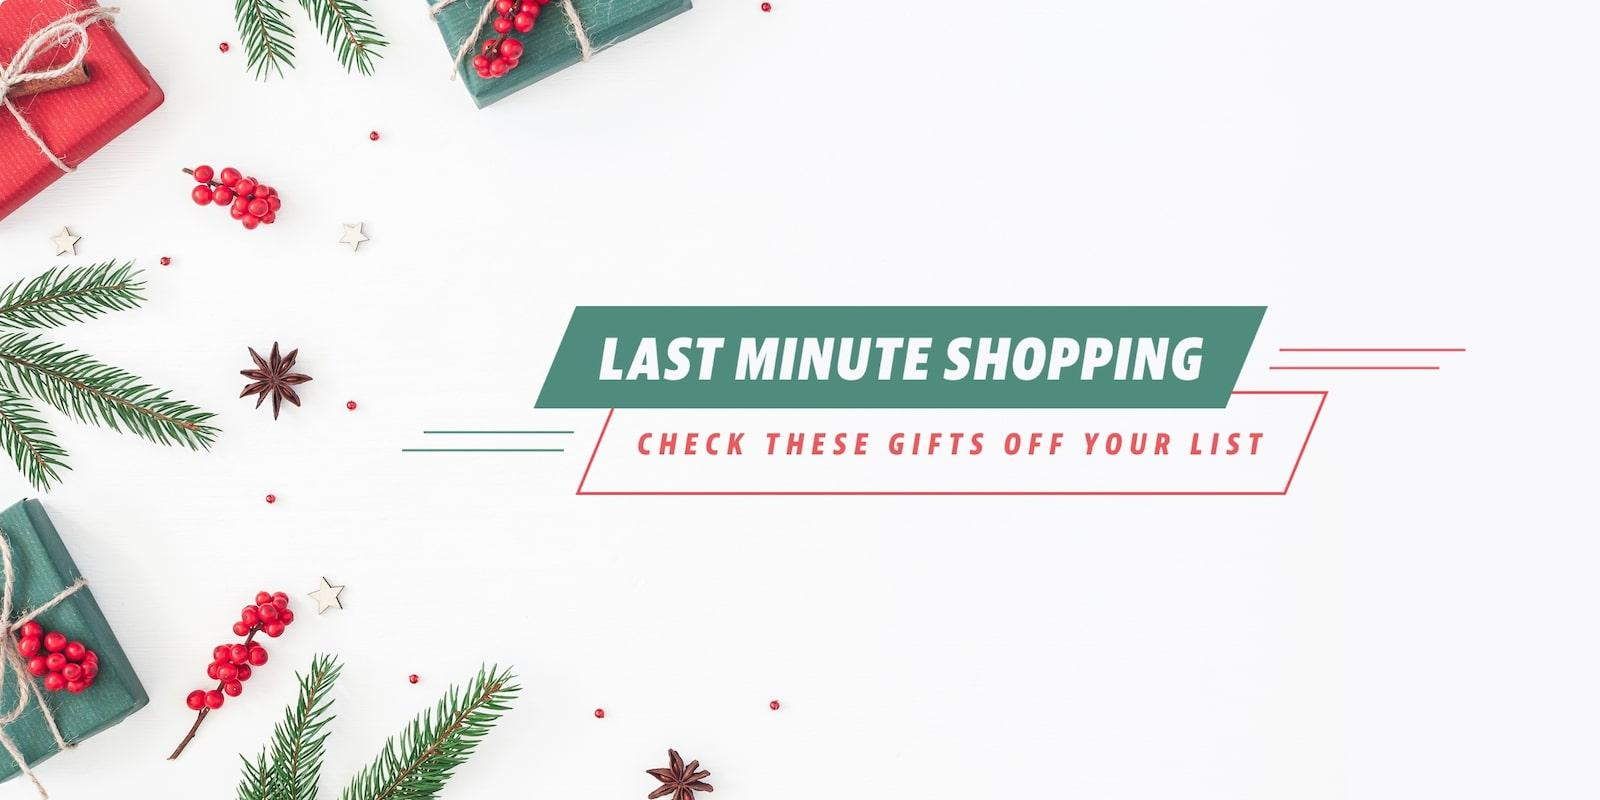 Last minute shopping starts now!